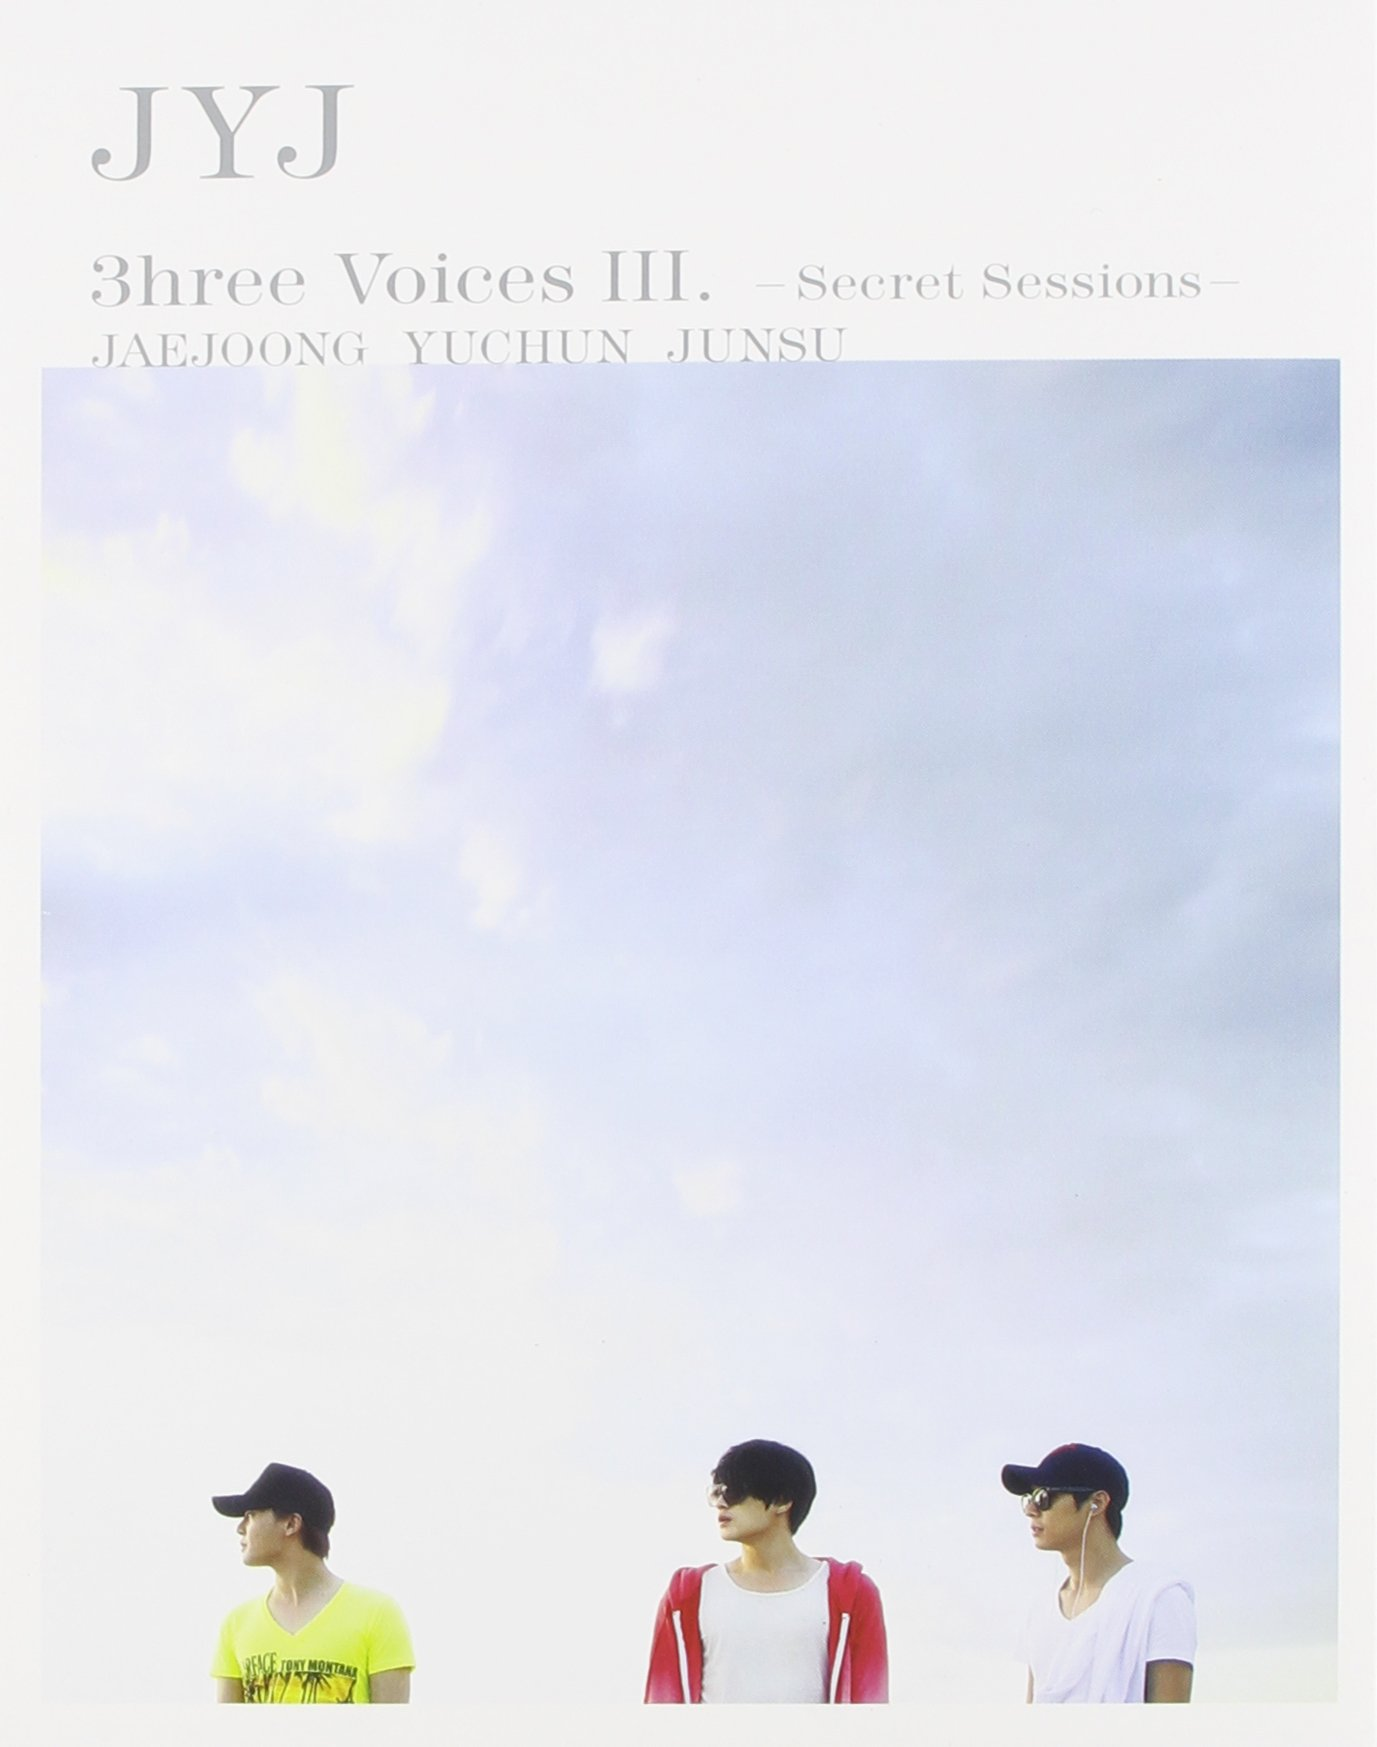 DVD : JyJ - 3hree Voices (Asia - Import, NTSC Region 0, 2PC)